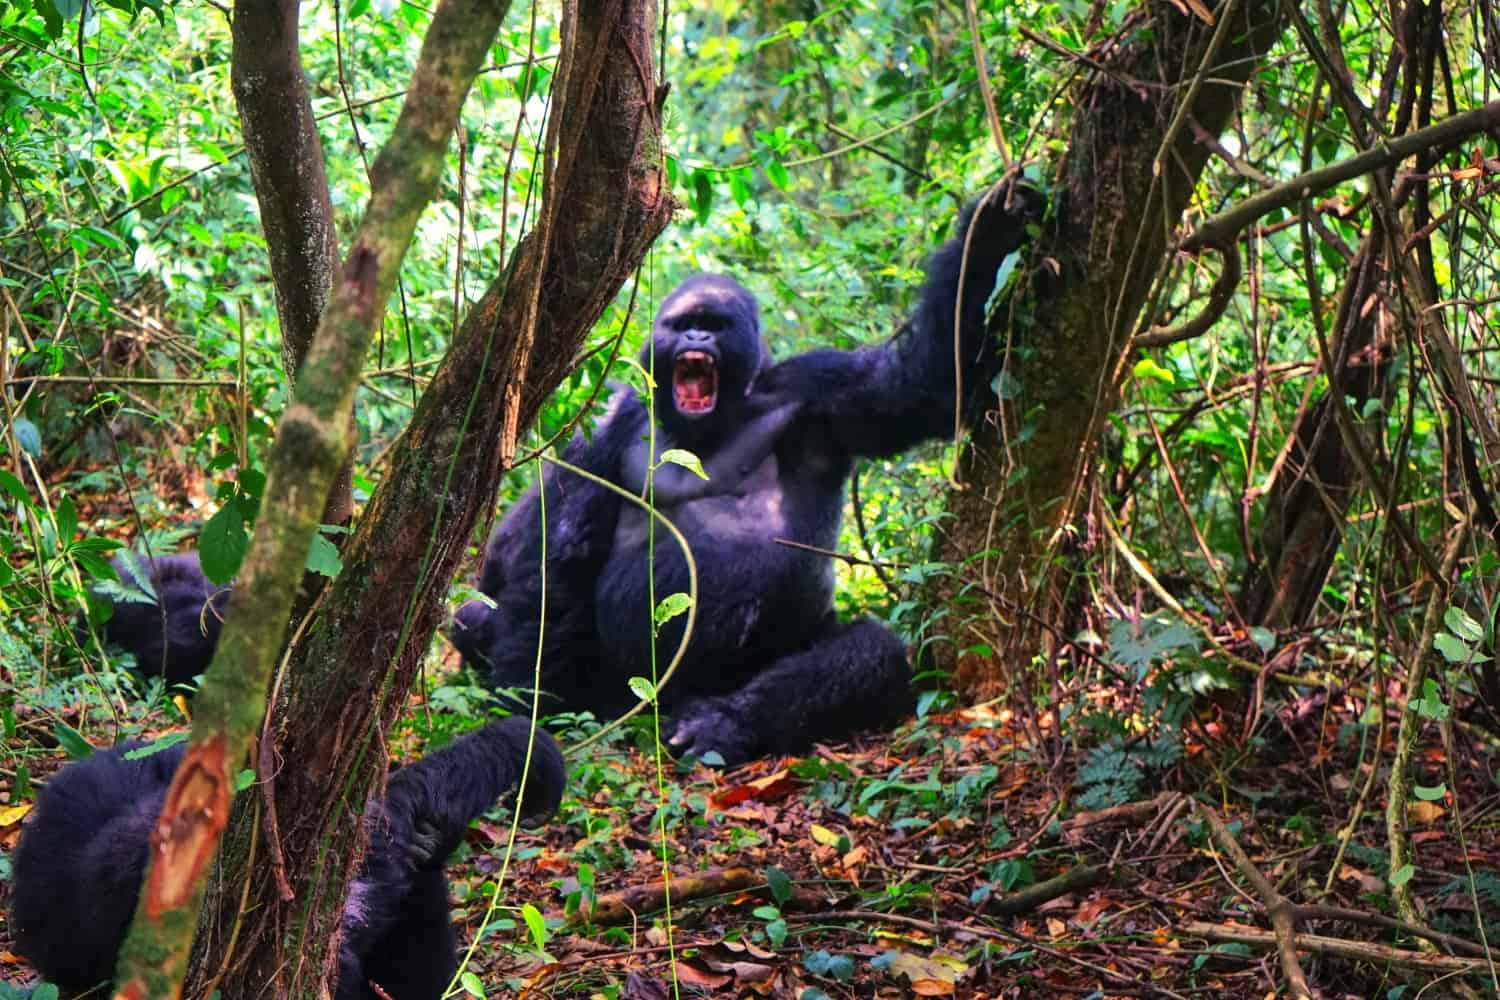 Yawning mountain gorilla in the DRC